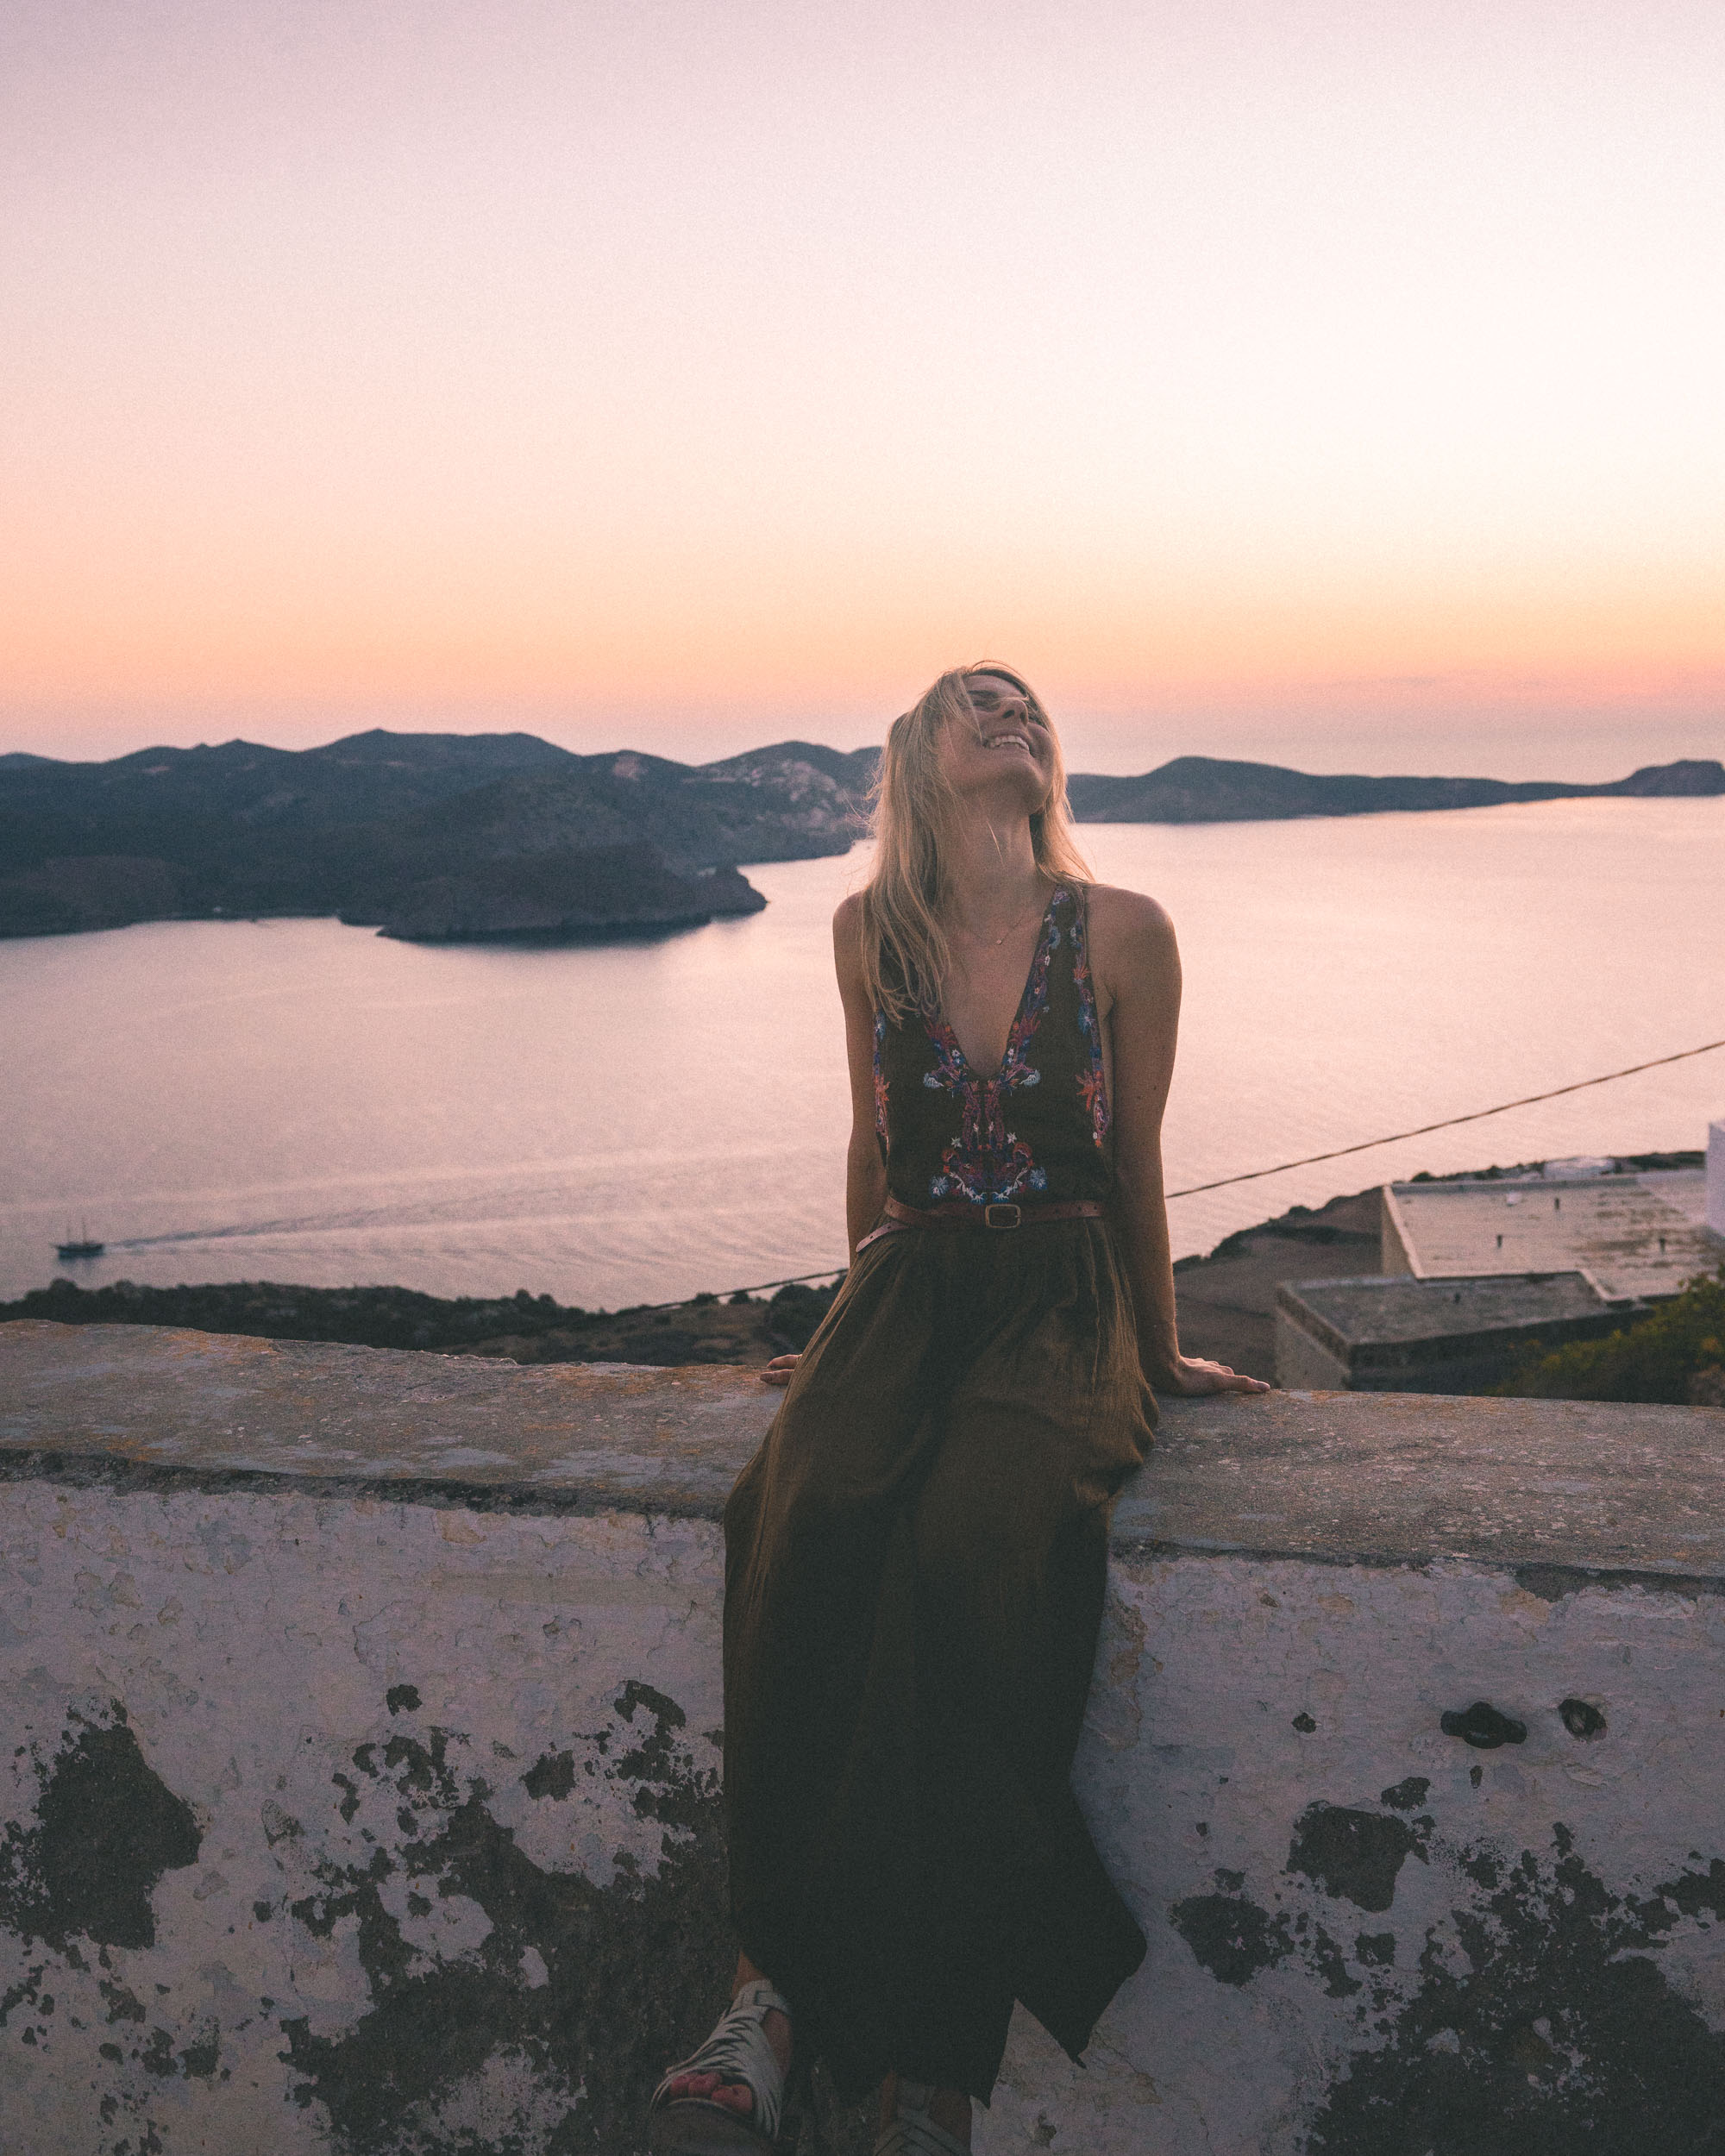 Adobe Lightroom Presets by Find Us Lost | Milos Greece